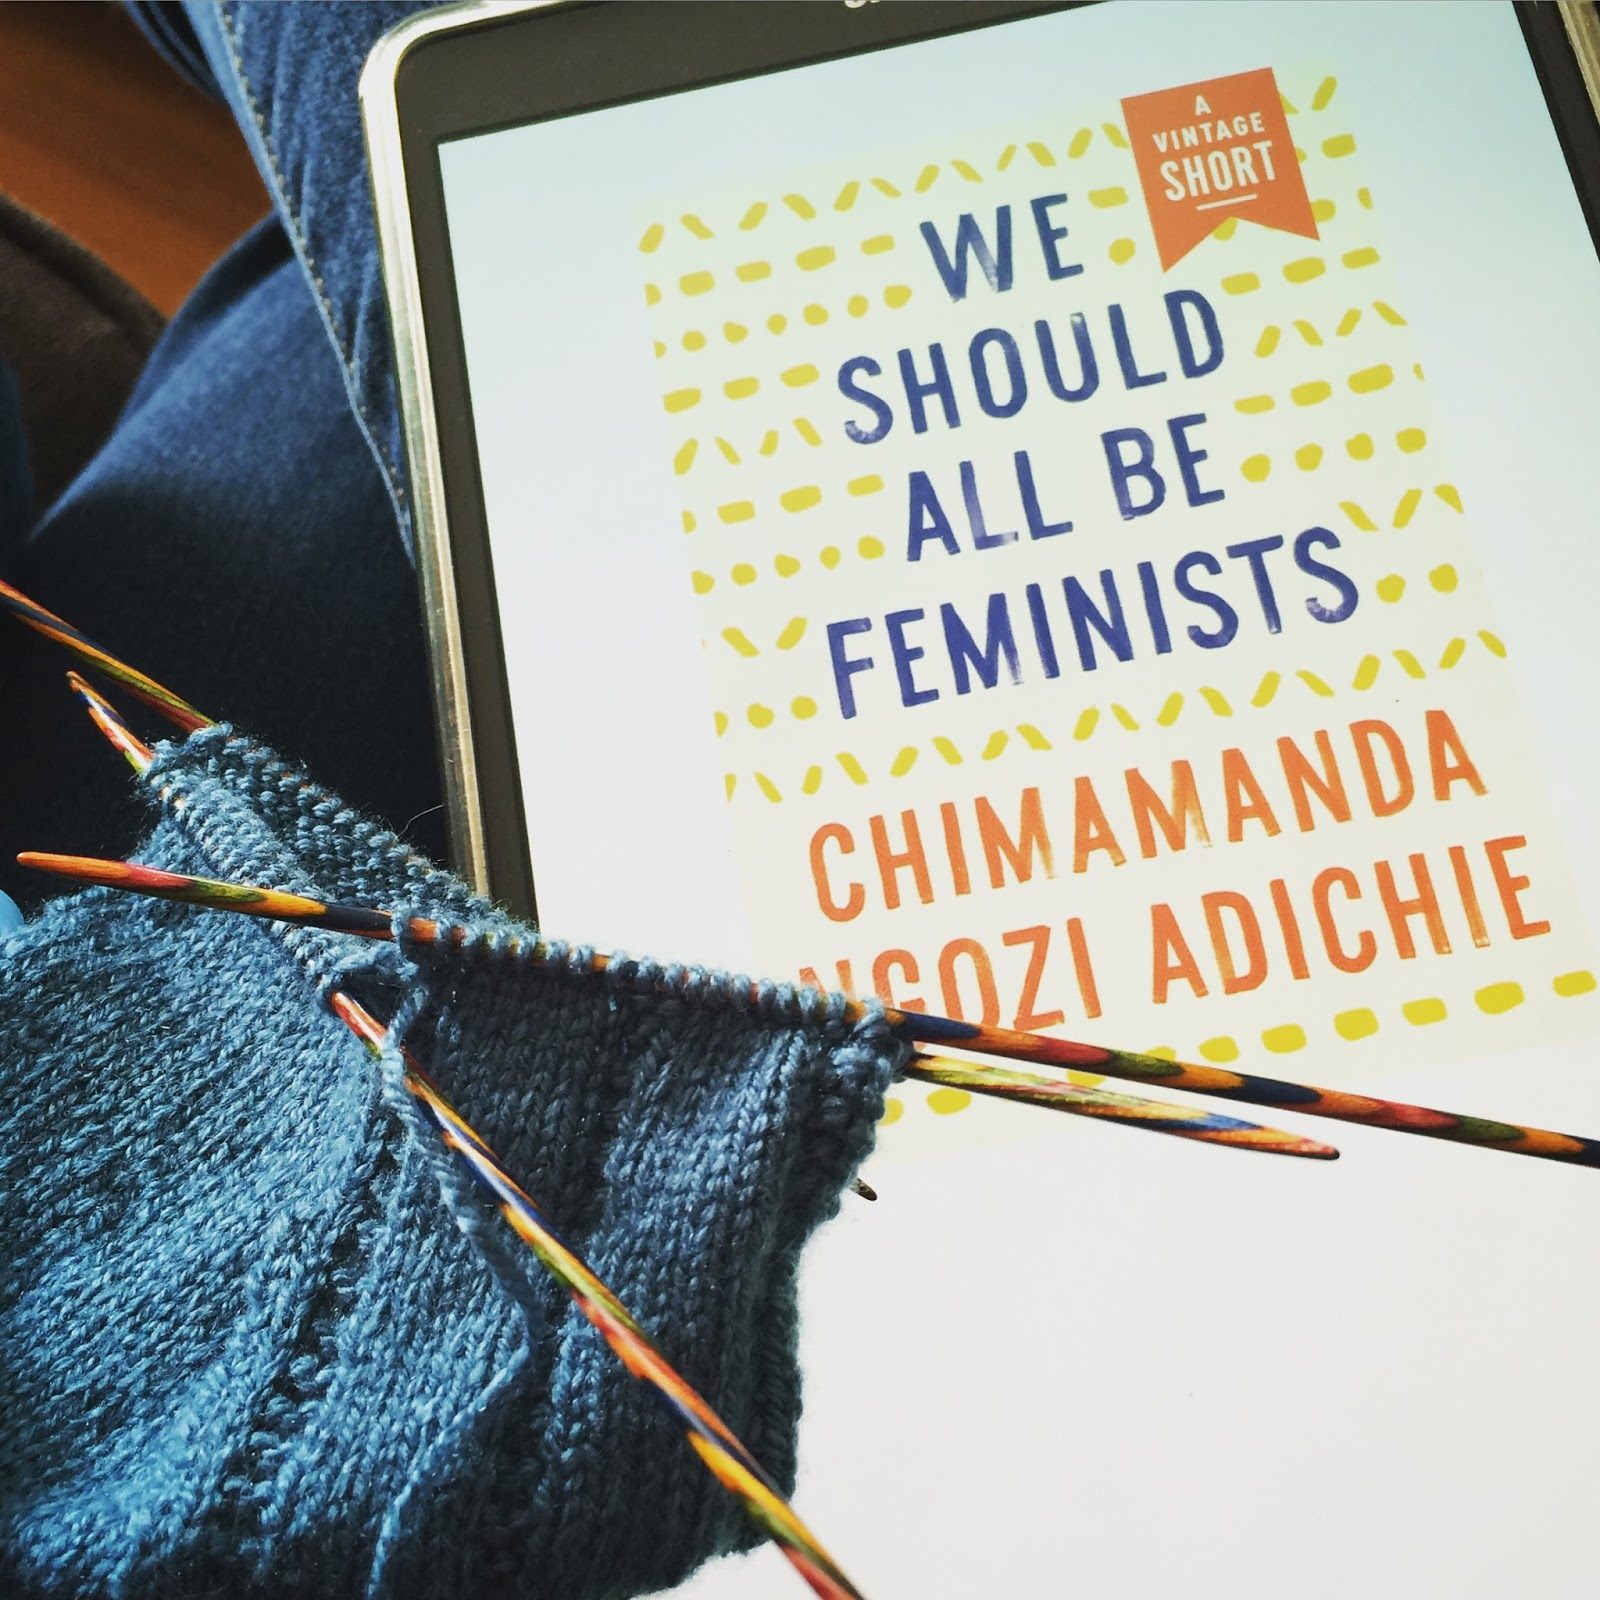 Knitting with We Should All Be Feminists